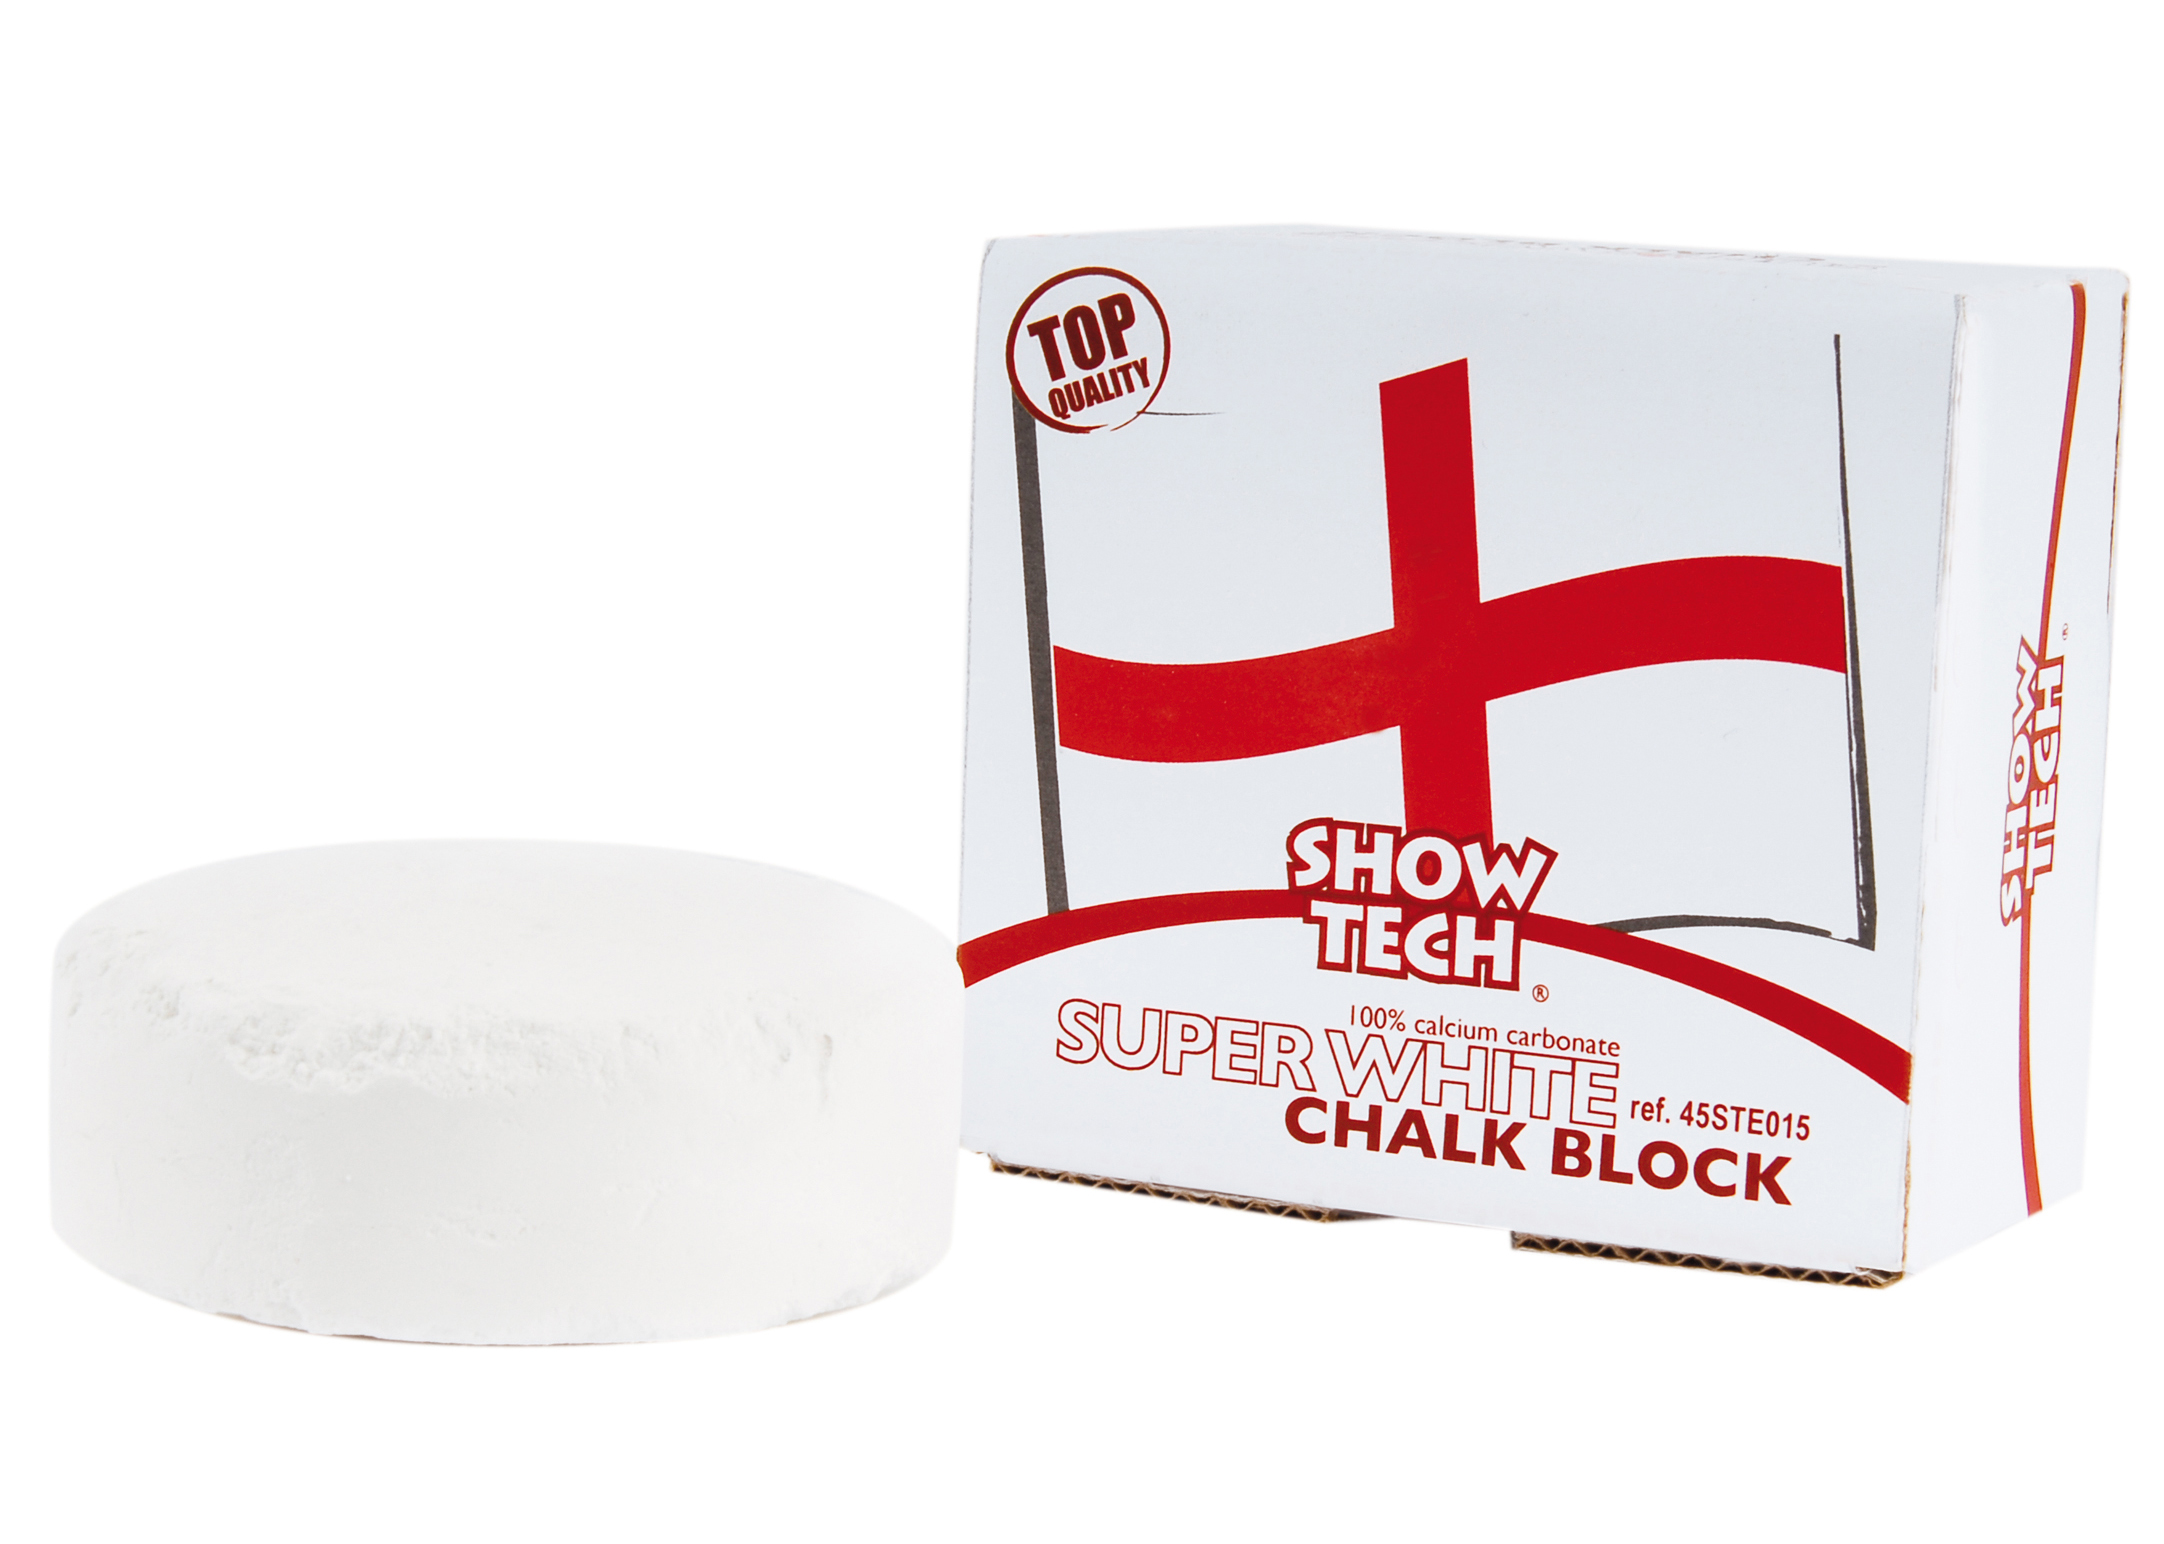 Show Tech English Chalk Block Round Super White Chalk Block